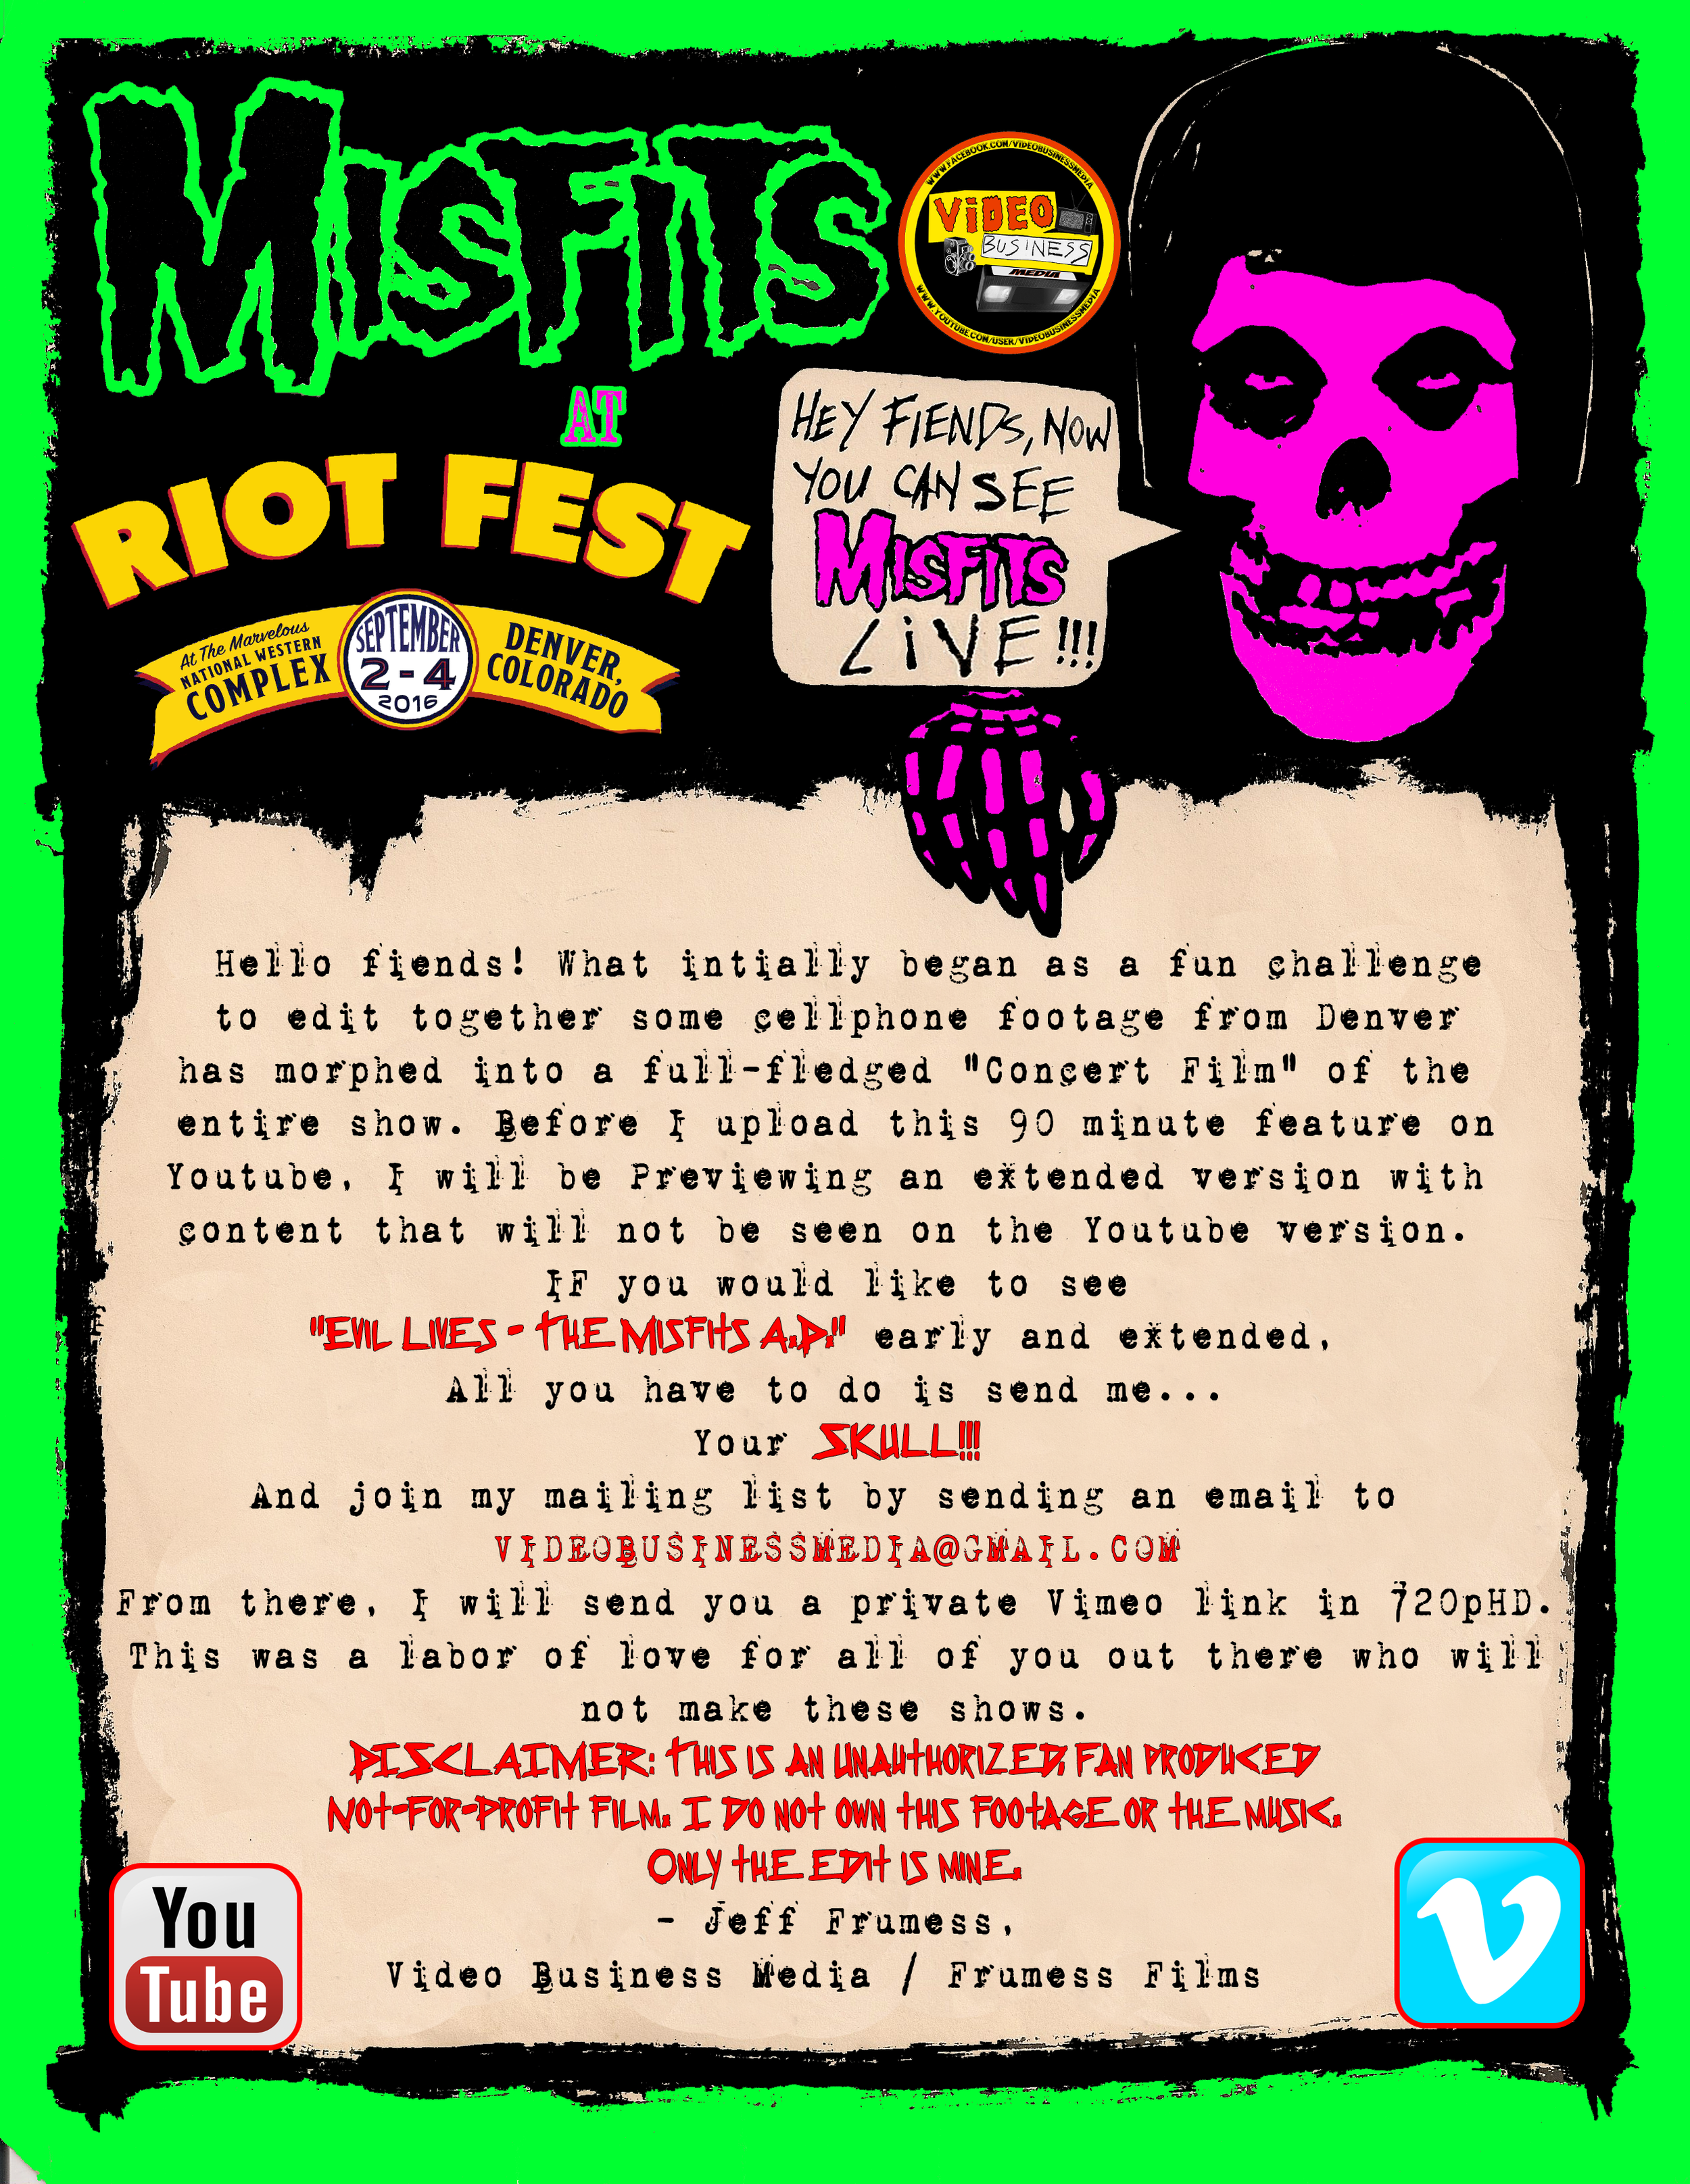 """Glenn Danzig and Jerry Only reuniting with Doyle as """"The Misfits"""" to play two Riot Fest dates in 2016 was an unparalleled example of Hell truly freezing over. Incredibly, the band would continue to play shows, but only with a strict  YONDR  policy in place to prevent people from shooting photos and video for the duration of the show (My friend Rich, thinks this unauthorized concert film is to blame). In frenzied anticipation of the Chicago show (for which I had tickets) I began watching the various crowd shot cellphone videos from the first show in Denver. Inspiration struck as I was overwhelmed by the sheer number of videos floating around on Youtube. I became obsessed with a single challenge: Can I rip all of these crowd shot videos and sync their audio in order to recreate the FULL 80 minute show? The answer was yes.  Using approximately 144 different cellphone/DSLR clips, I managed to sync up the whole show. Some songs like """"Death Comes Ripping"""" use 11 different angles from the various cellphones in the audience.  Considering the materials I had to work with, I am very proud of the result.   Watch it here - NOTE: This is a non-commercial, unauthorized concert film and only featured on this site for free."""